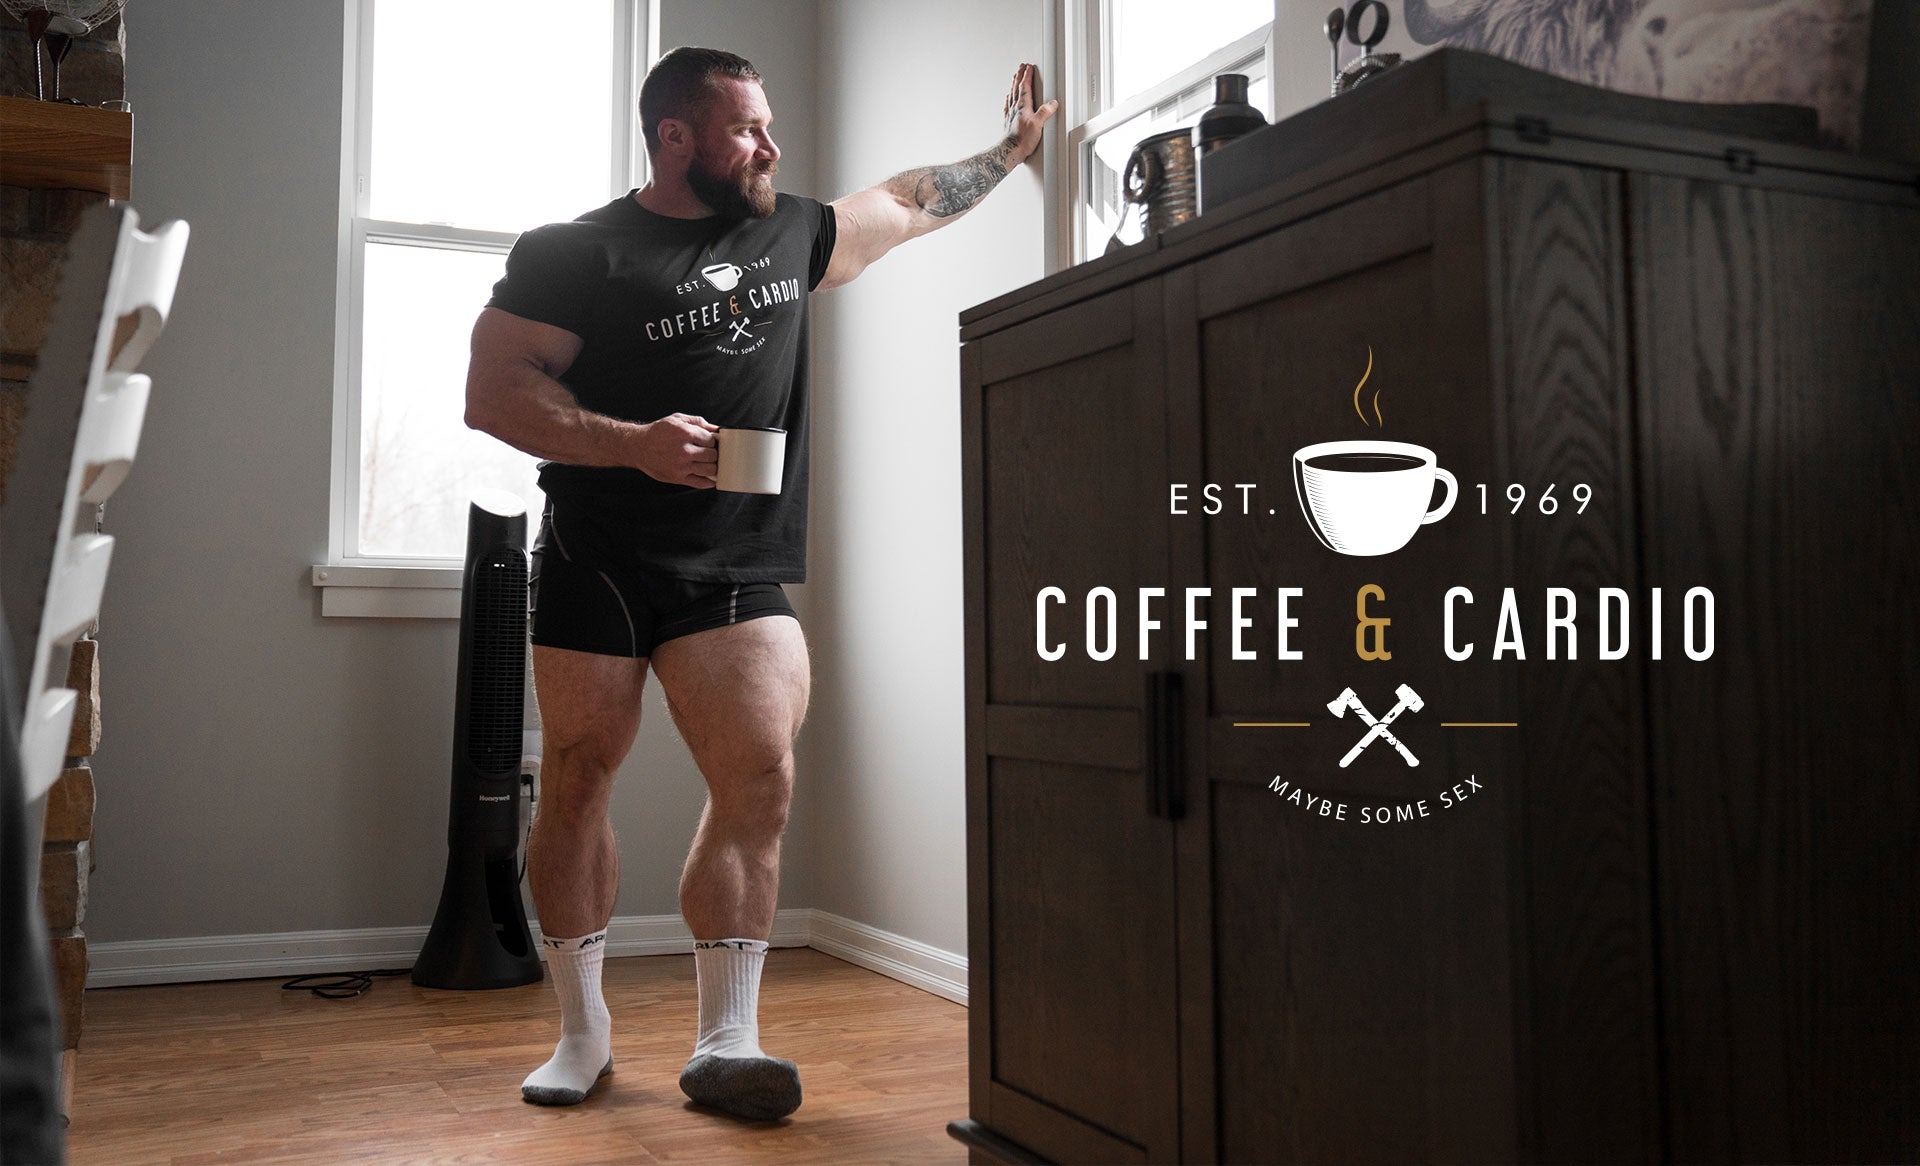 Coffee & Cardio, Maybe some Sex